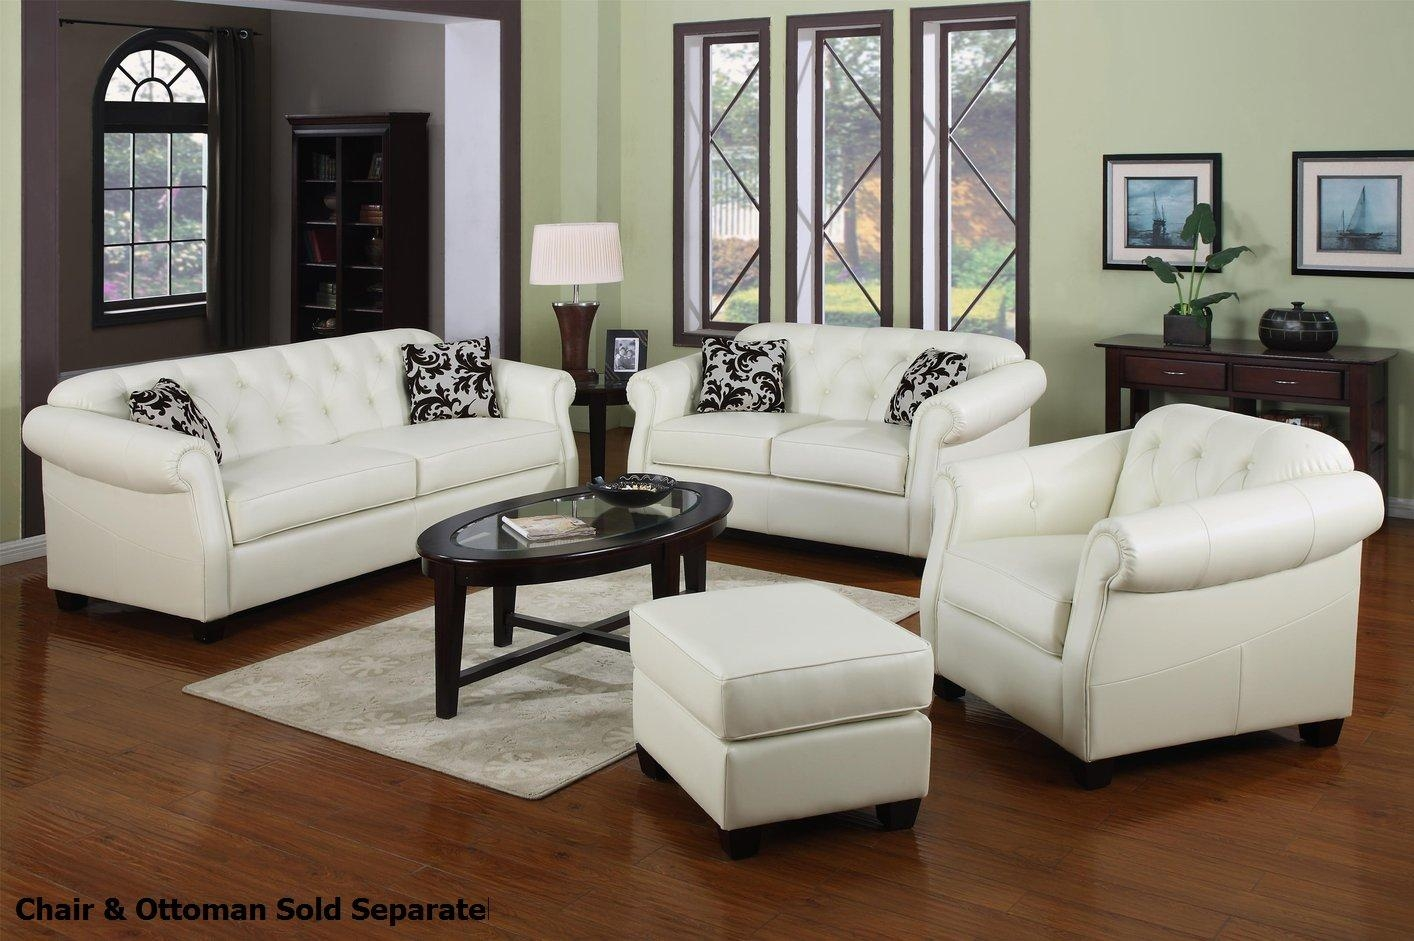 Sofa Salon Marocain 20 Best Collection Of Off White Leather Sofa And Loveseat